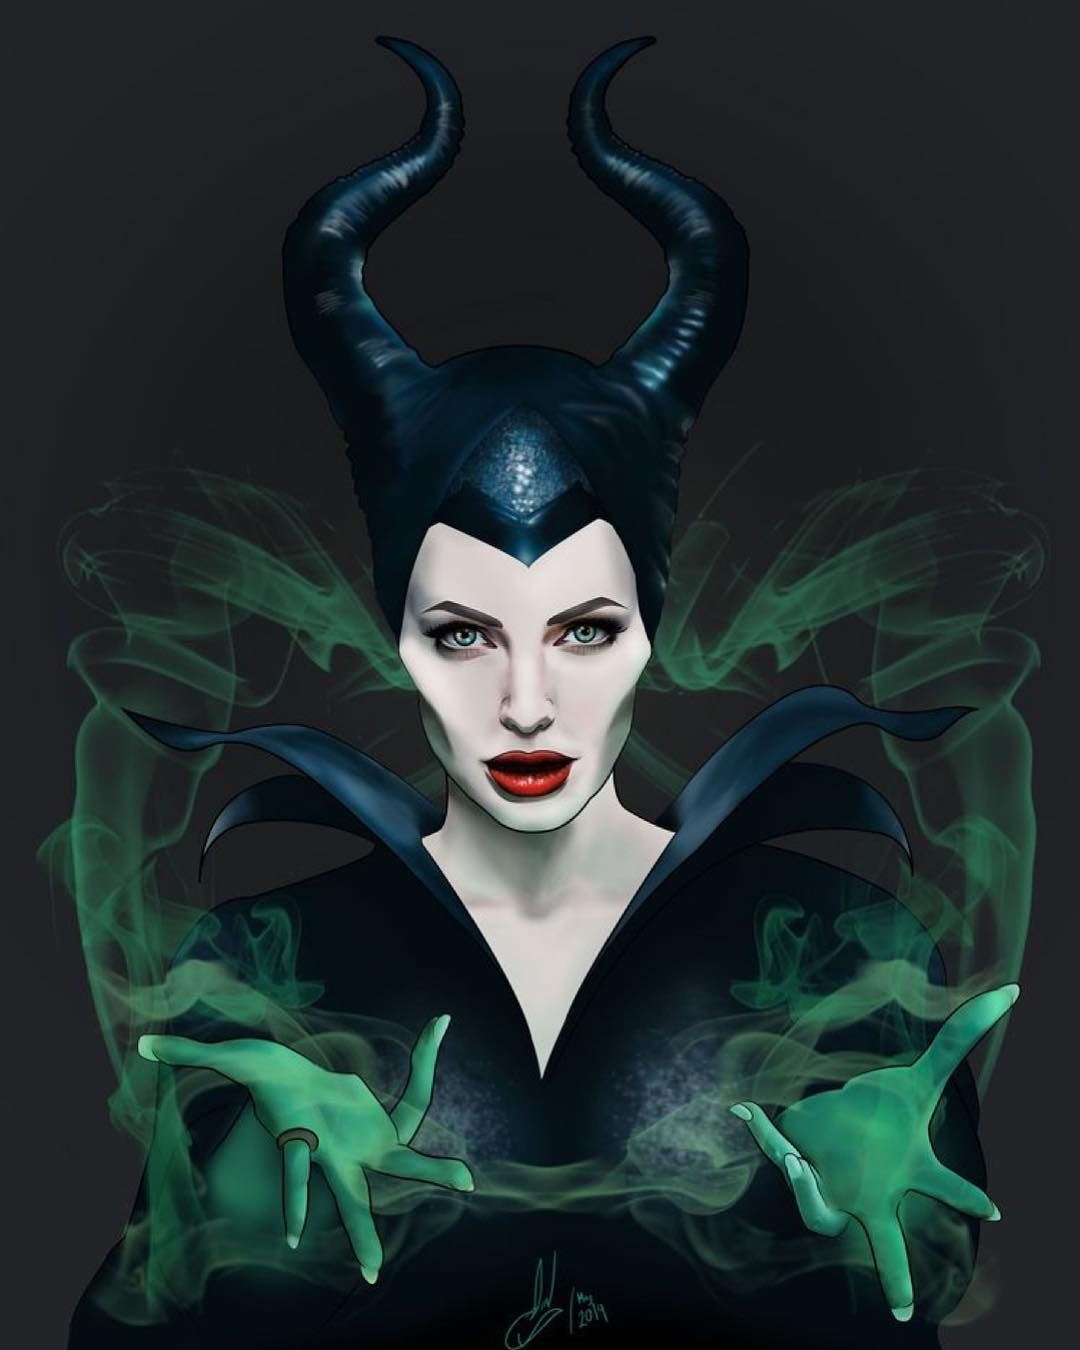 Ghoulish Maleficent Art Piece By Jin Escobar Maleficent